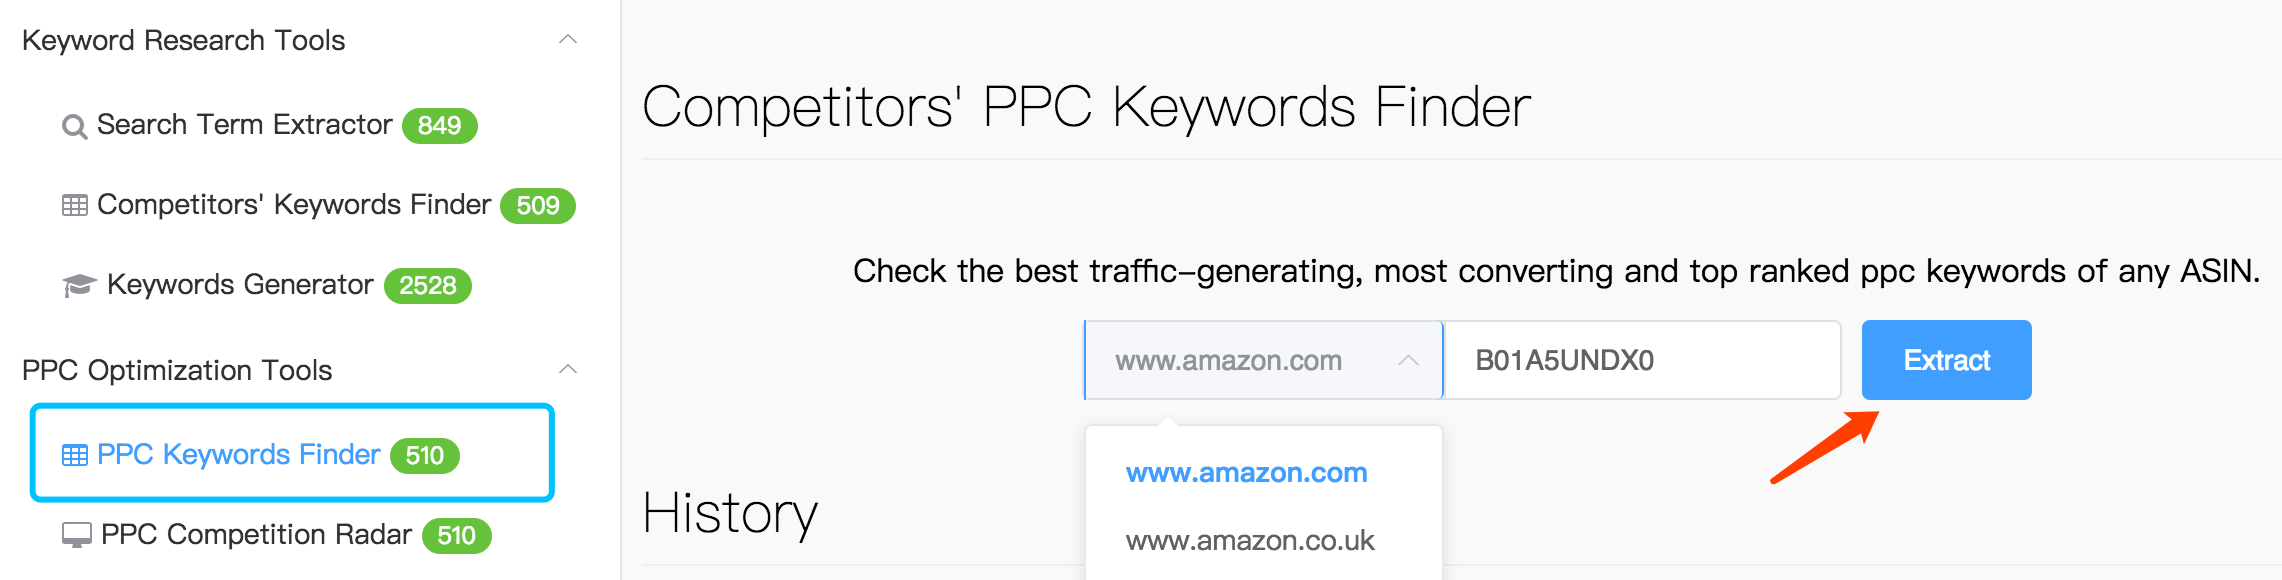 amzdatastudio ppc keyword finder